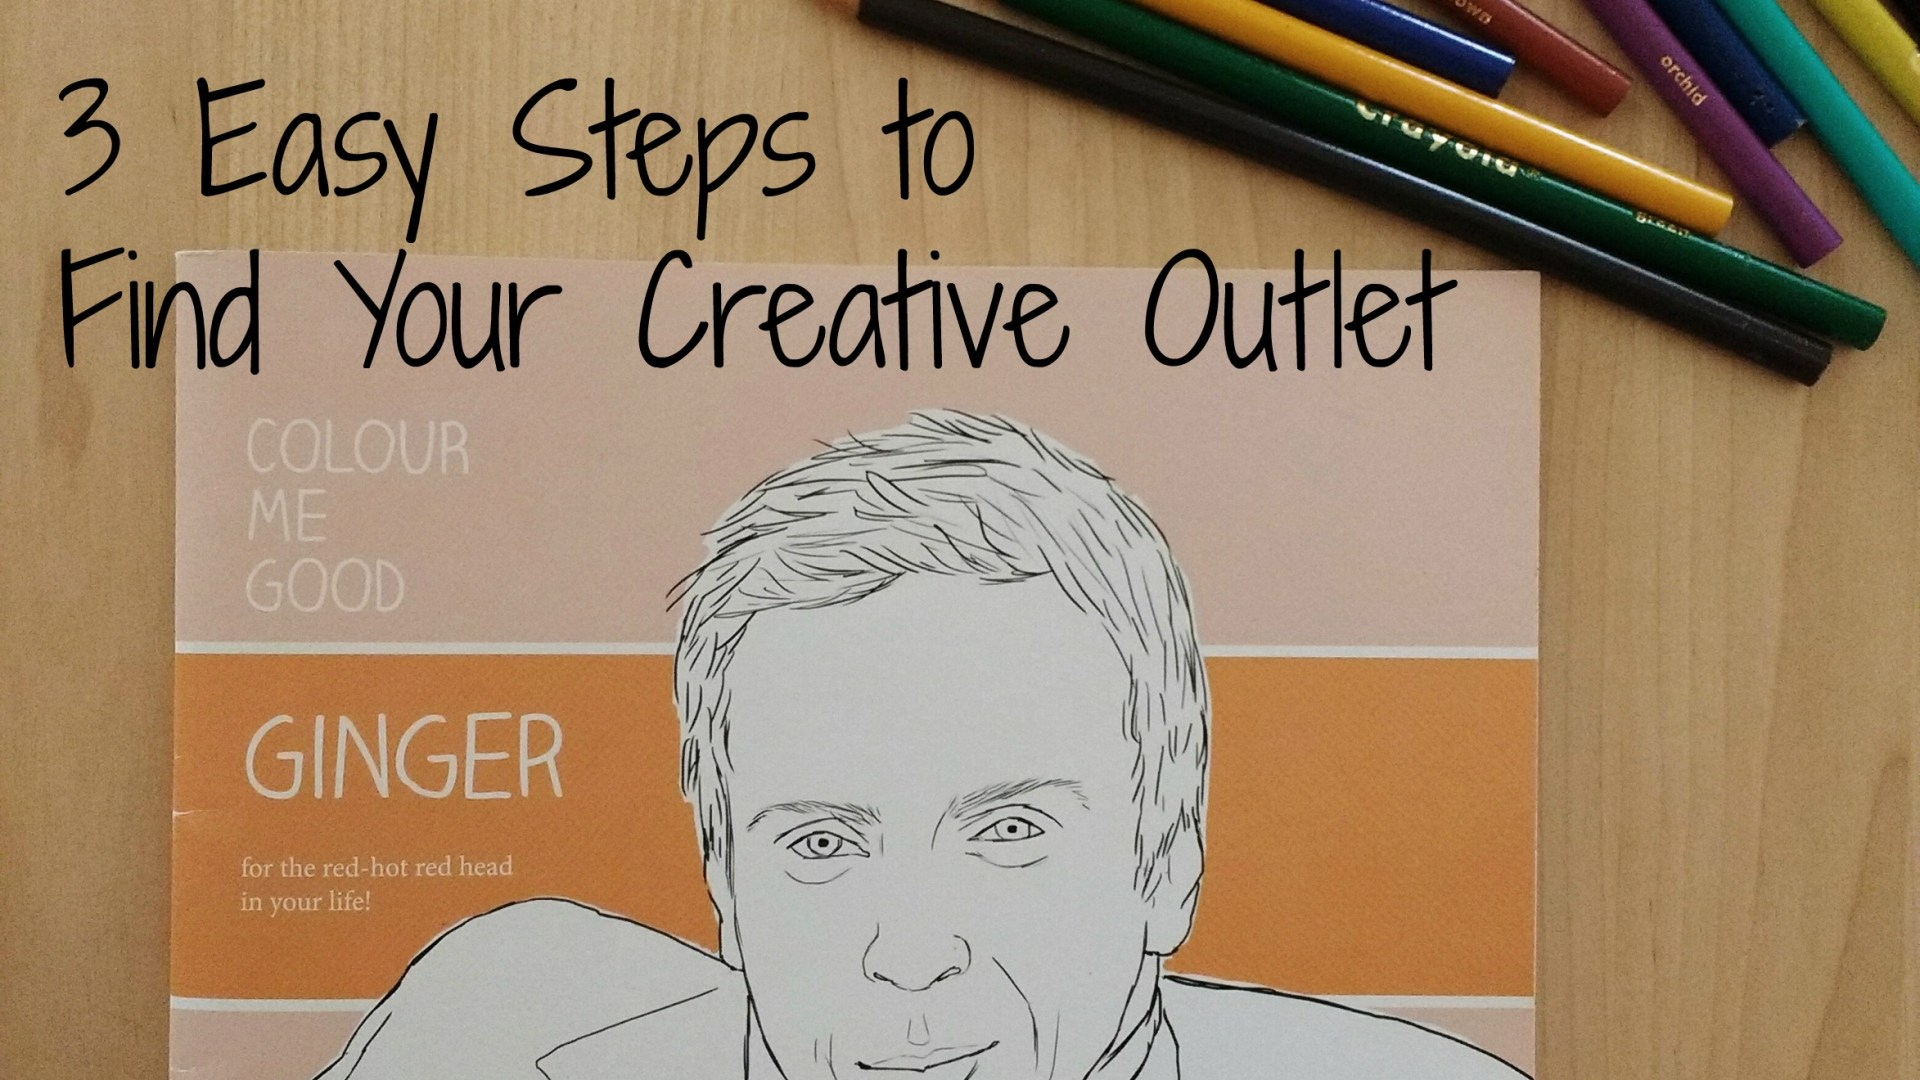 3 Easy Steps To Find Your Creative Outlet